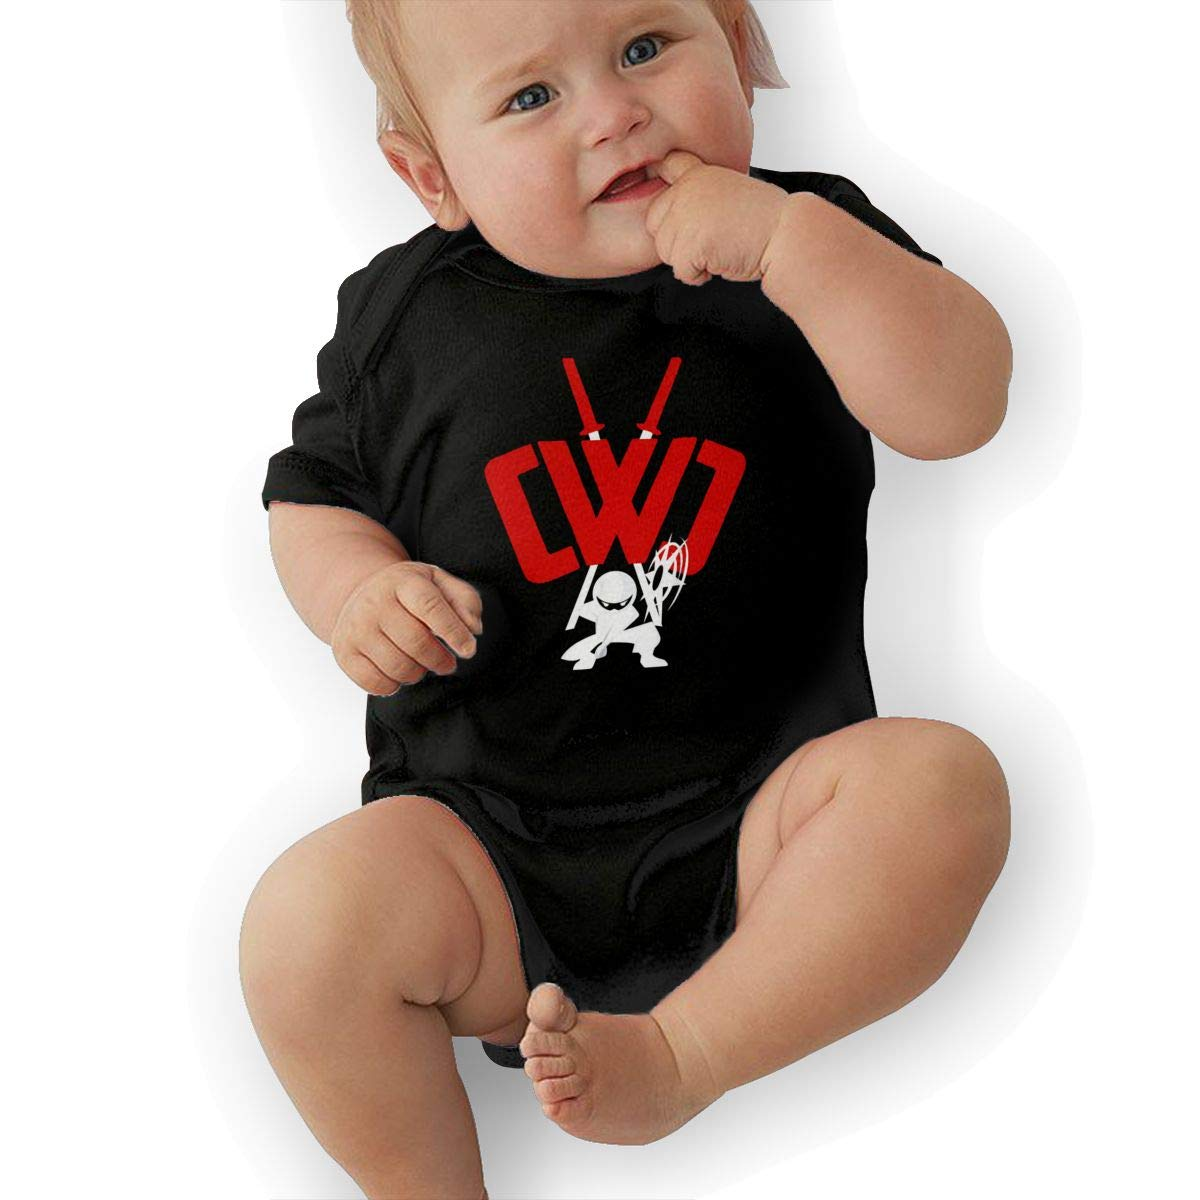 Kids Baby Short Sleeve Romper CWC Chad Wild Clay Ninja Unisex Cotton Cute Jumpsuit Baby Crawler Clothes